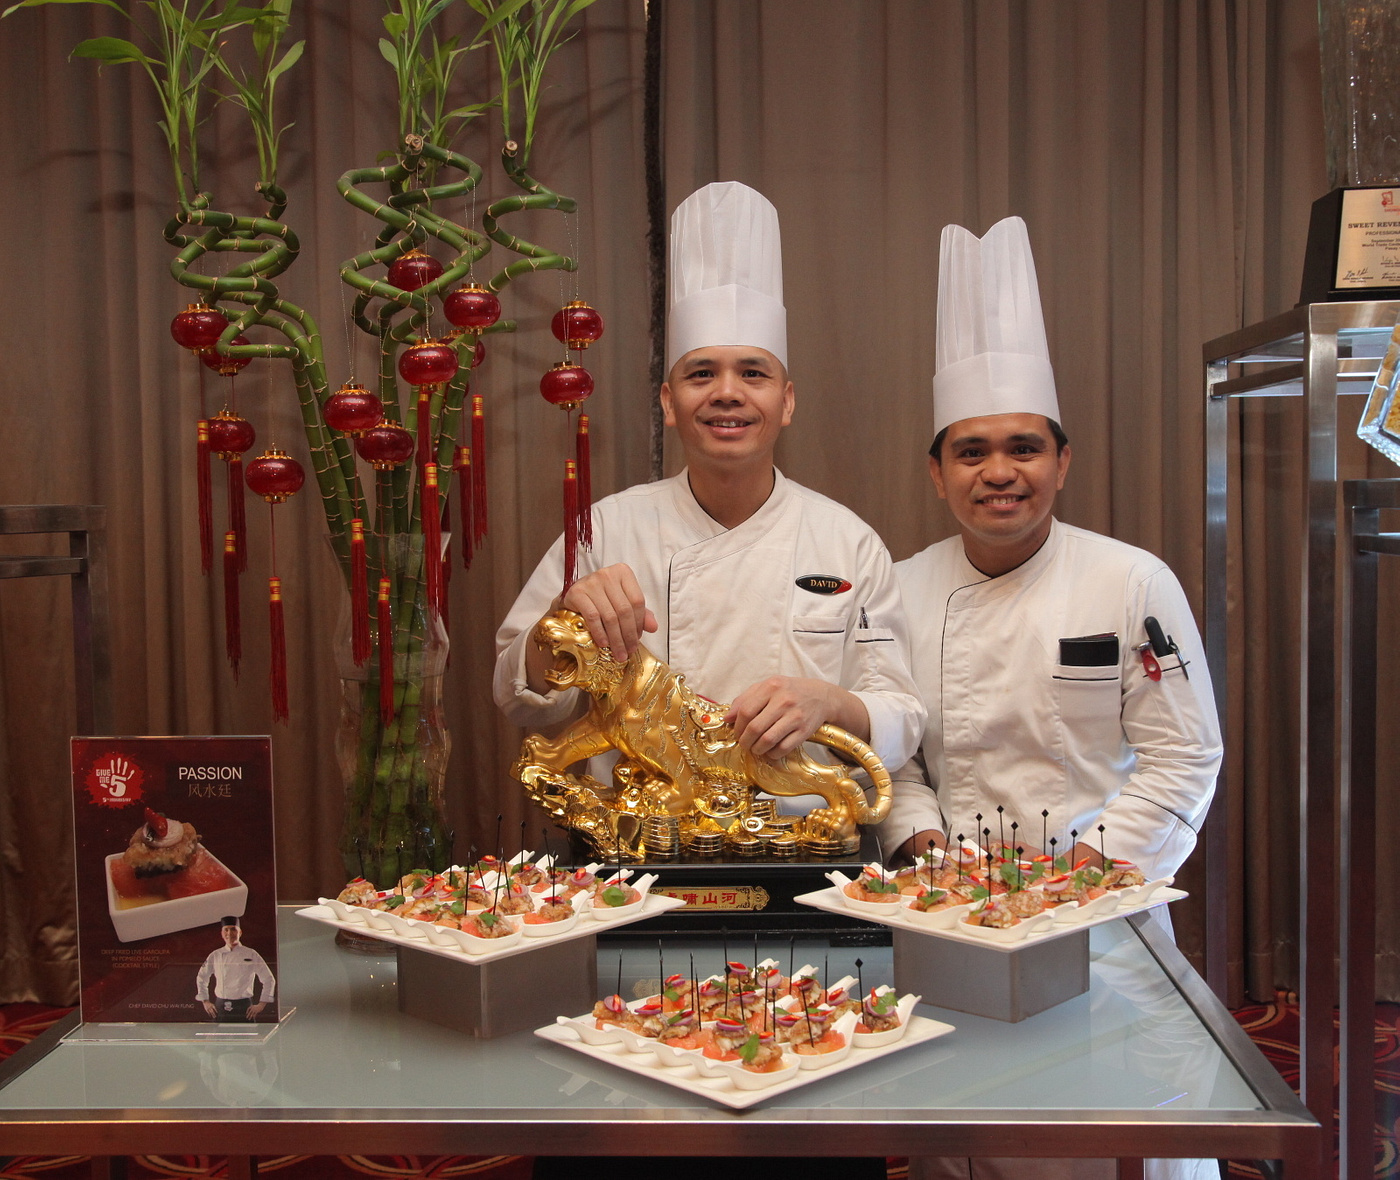 resorts world manila give me 5 anniversary celebration